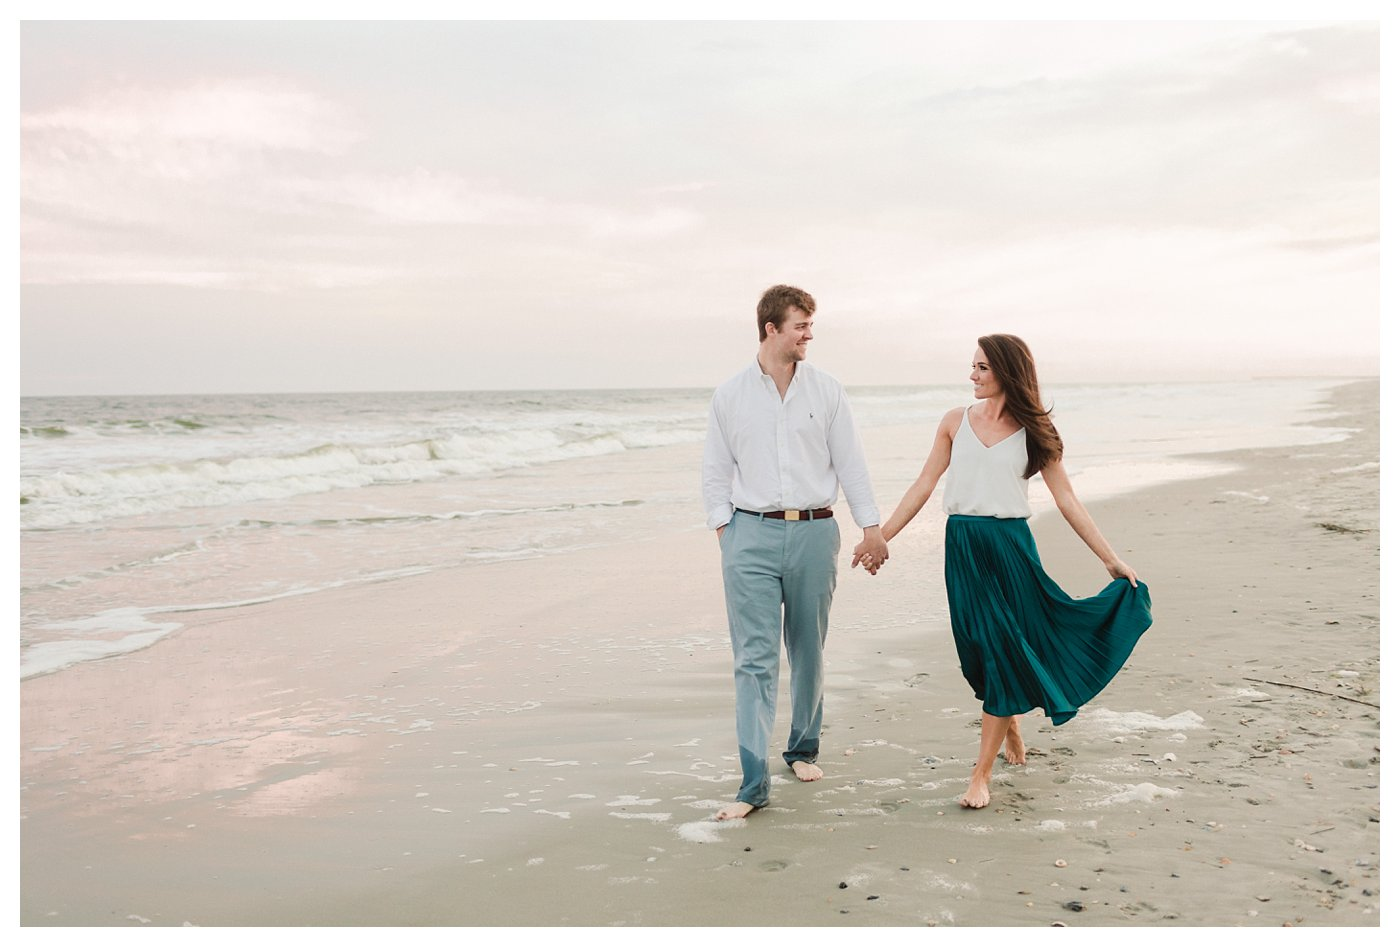 Ocean_Isle_NC_Beach_Coastal_Engagement_Session_Turqoise_White_Candlelit_0011.jpg